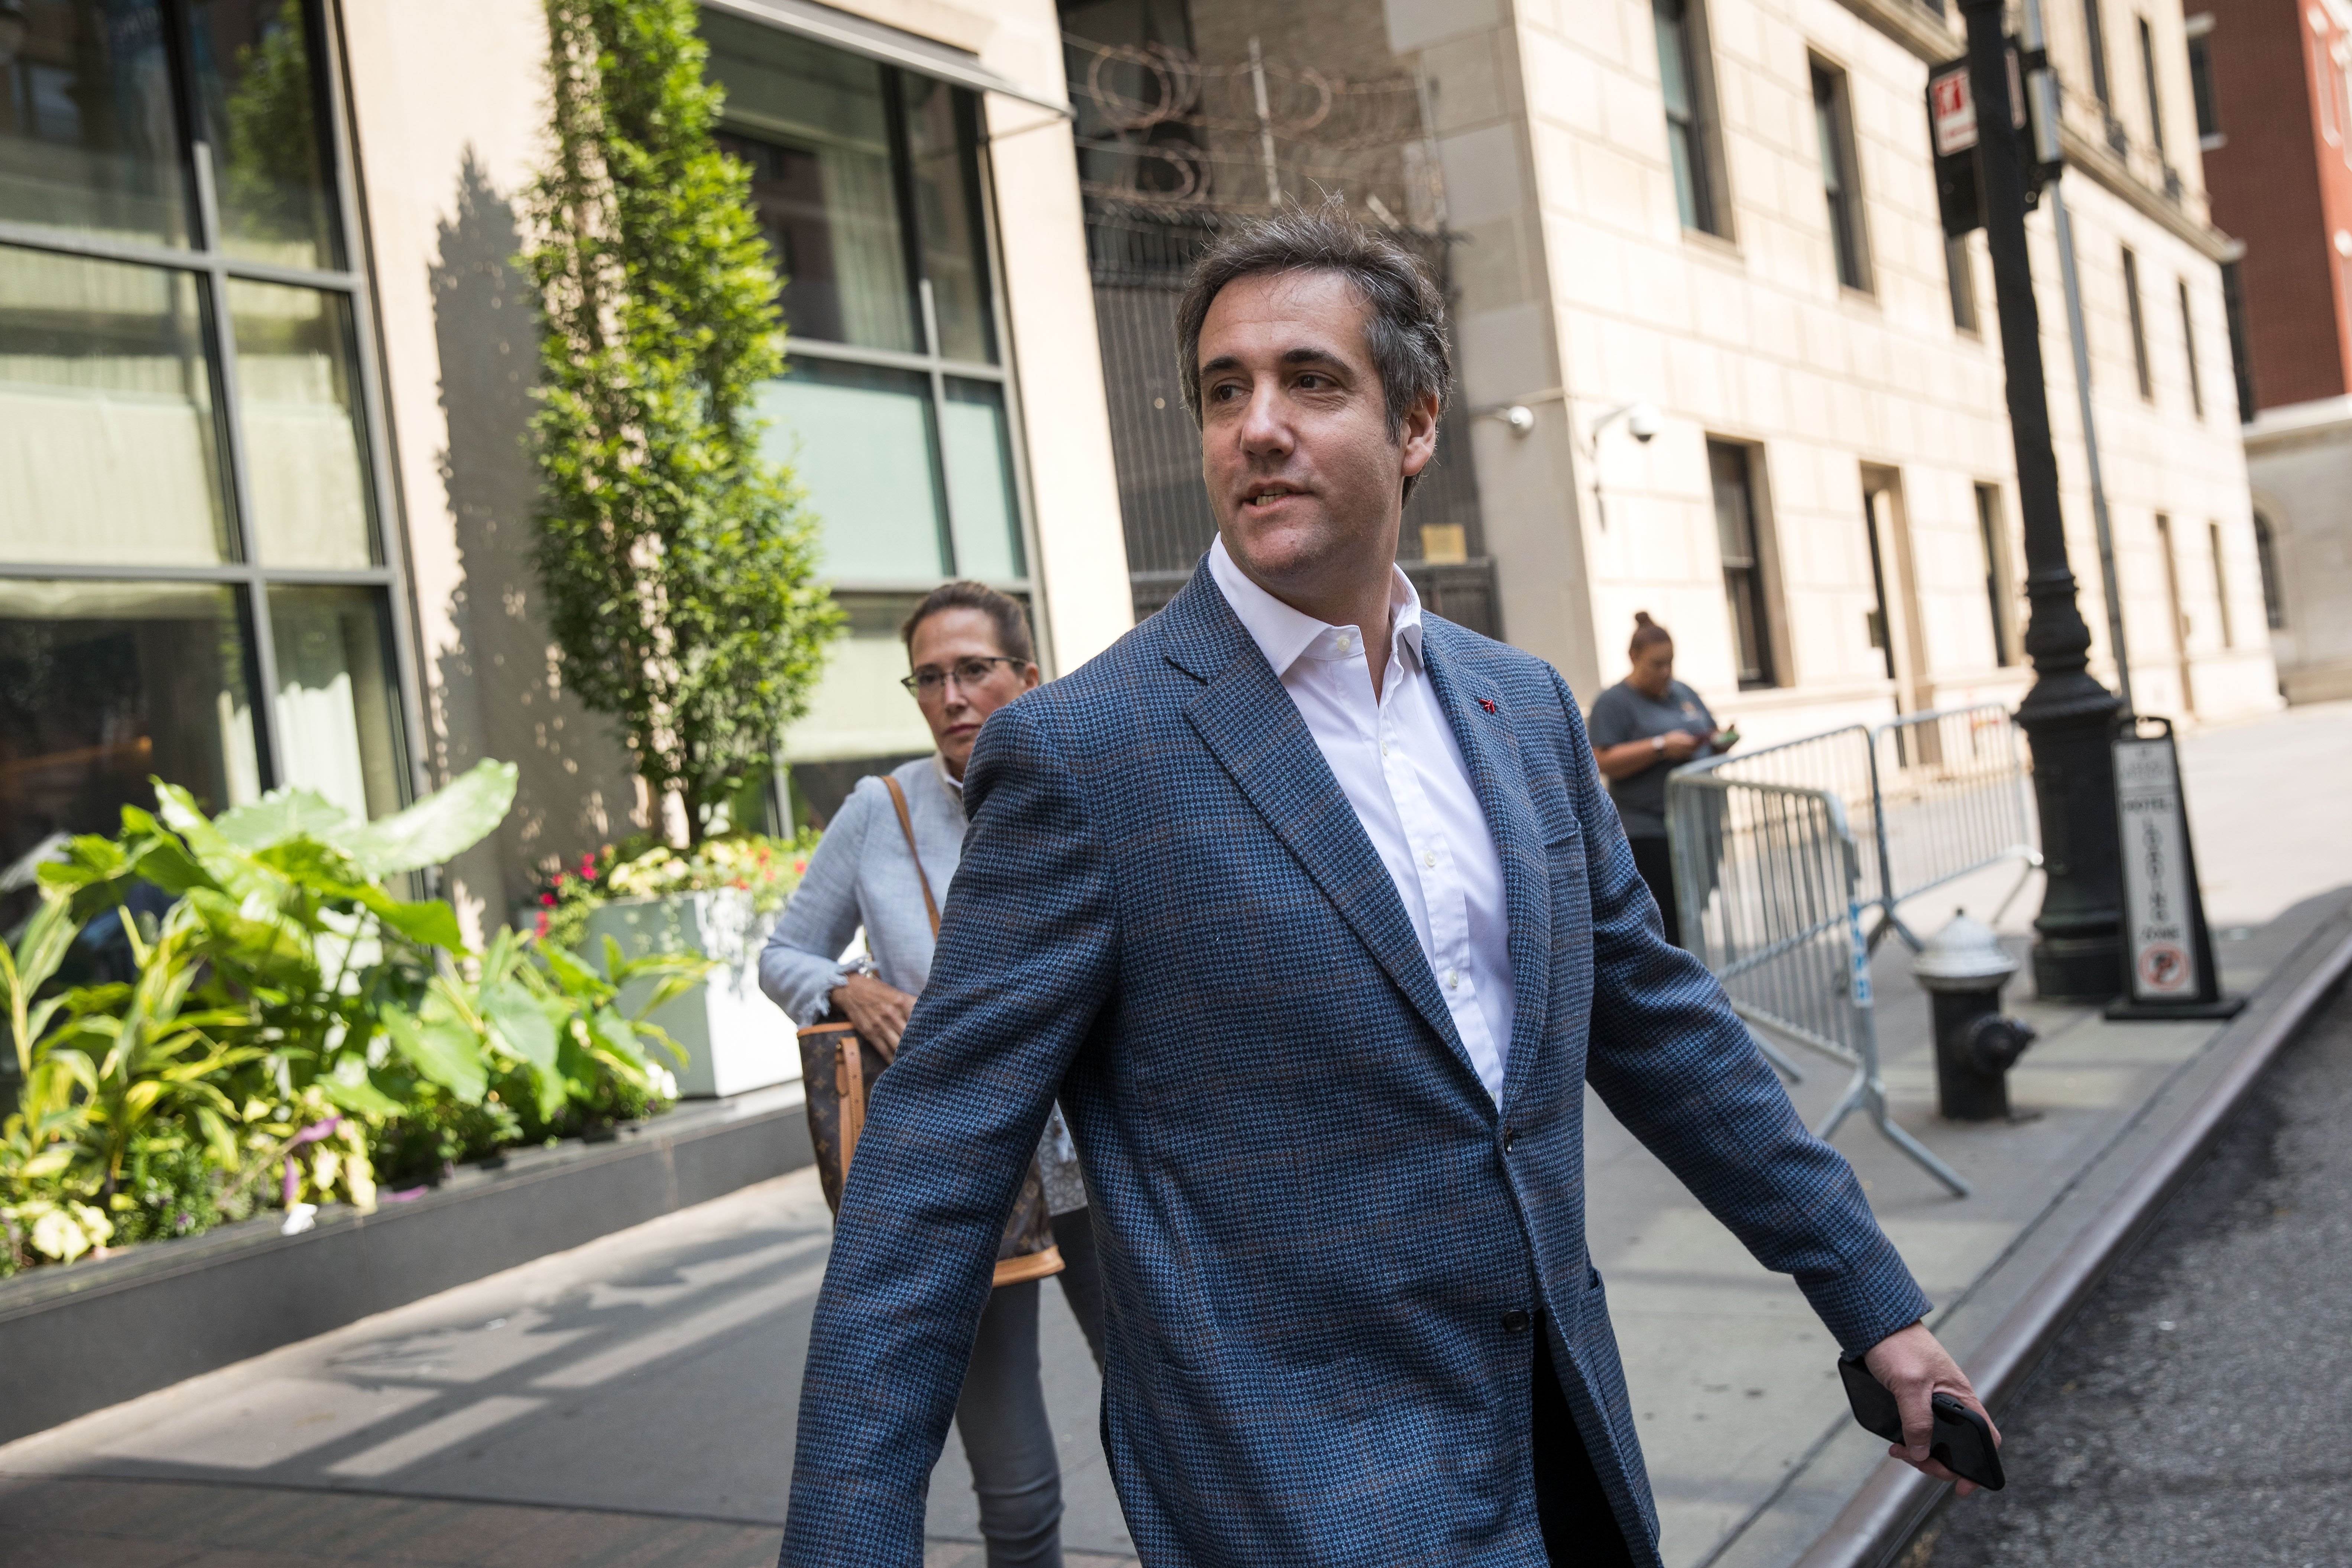 Former Trump Lawyer Michael Cohen Exits The New York Hotel He Currently Lives In